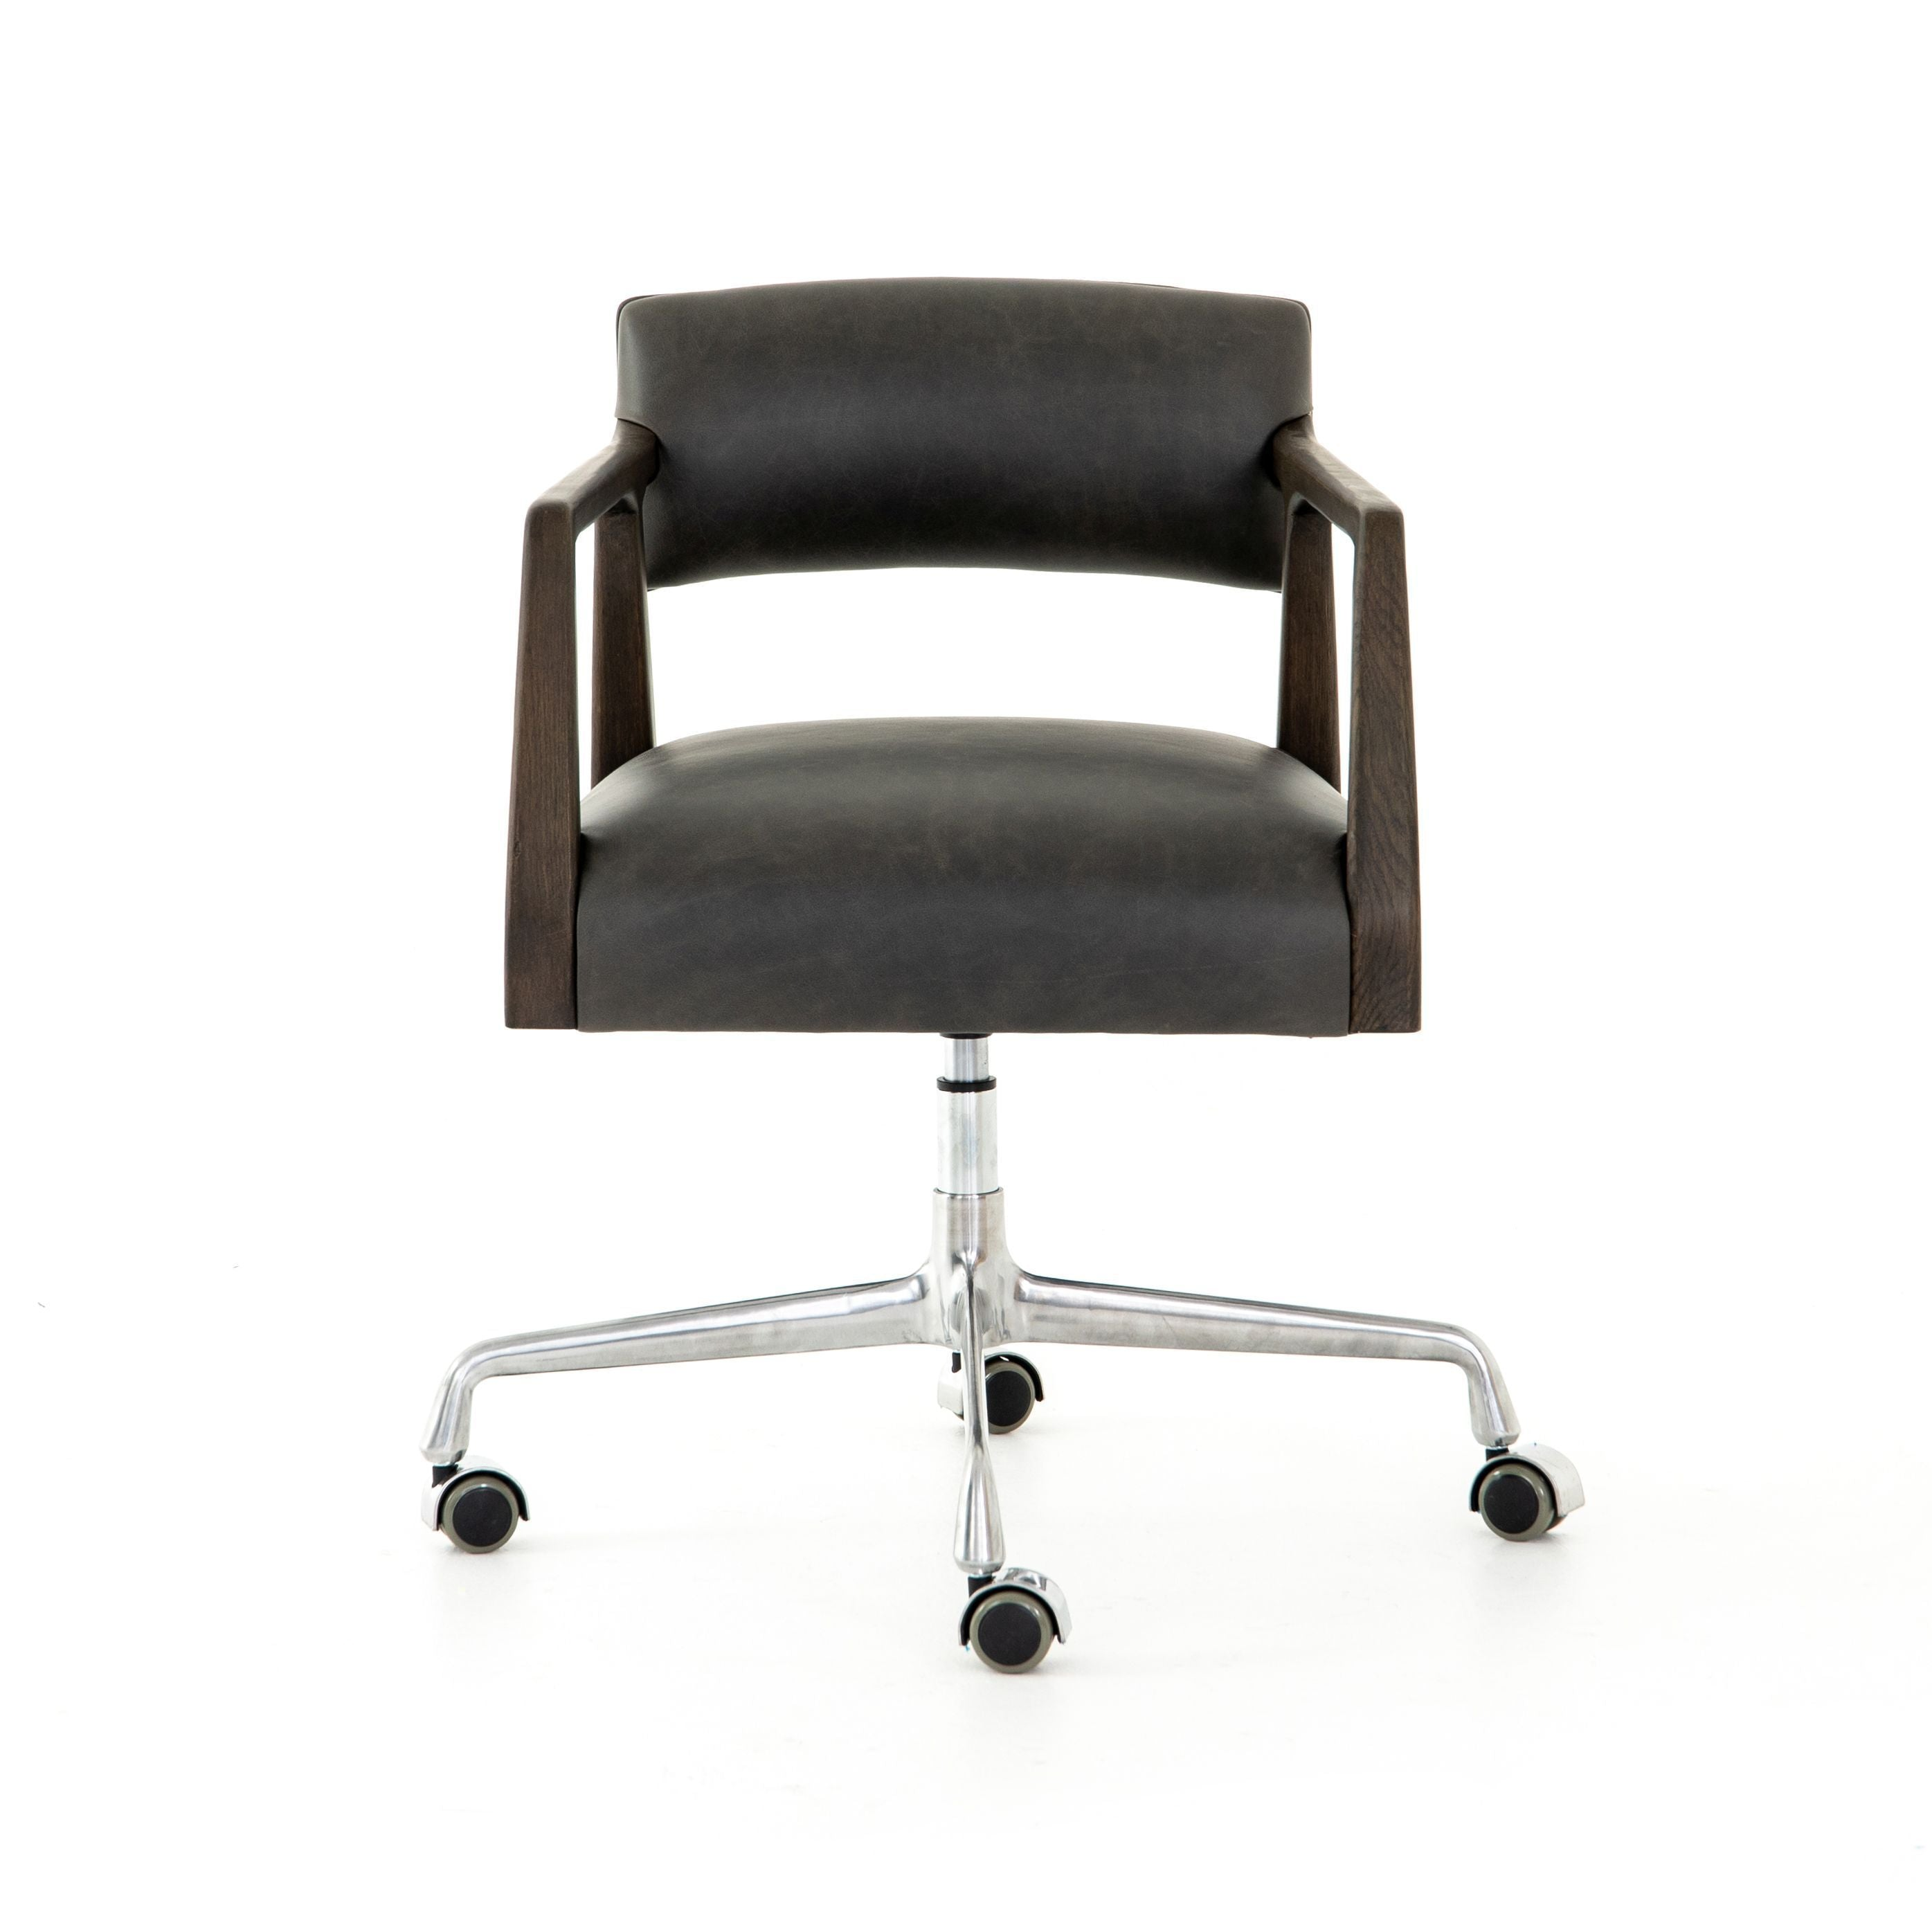 Tyler Desk Chair in Various Colors by BD Studio